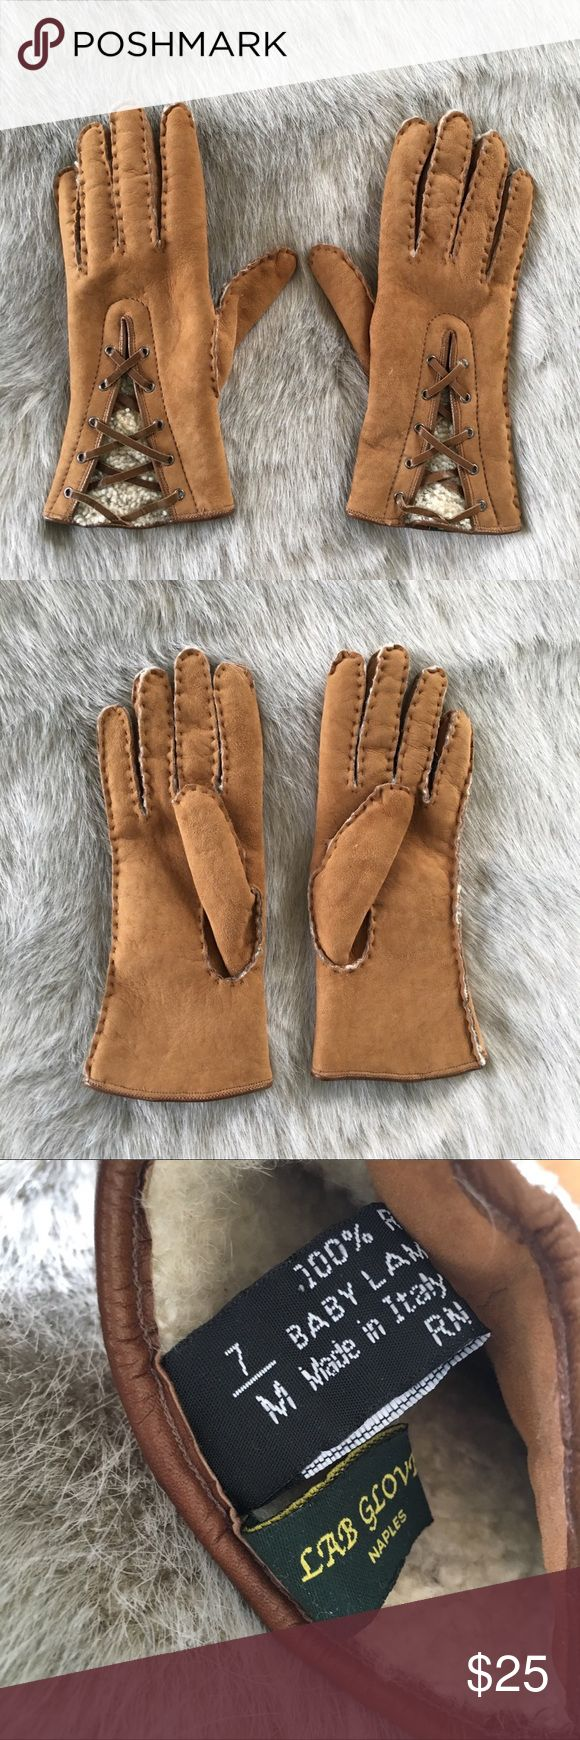 Italian Leather Gloves - Size 7 Baby Lamb Skin Lined Gloves. Genuine Leather  In great condition Lab Gloves Accessories Gloves & Mittens